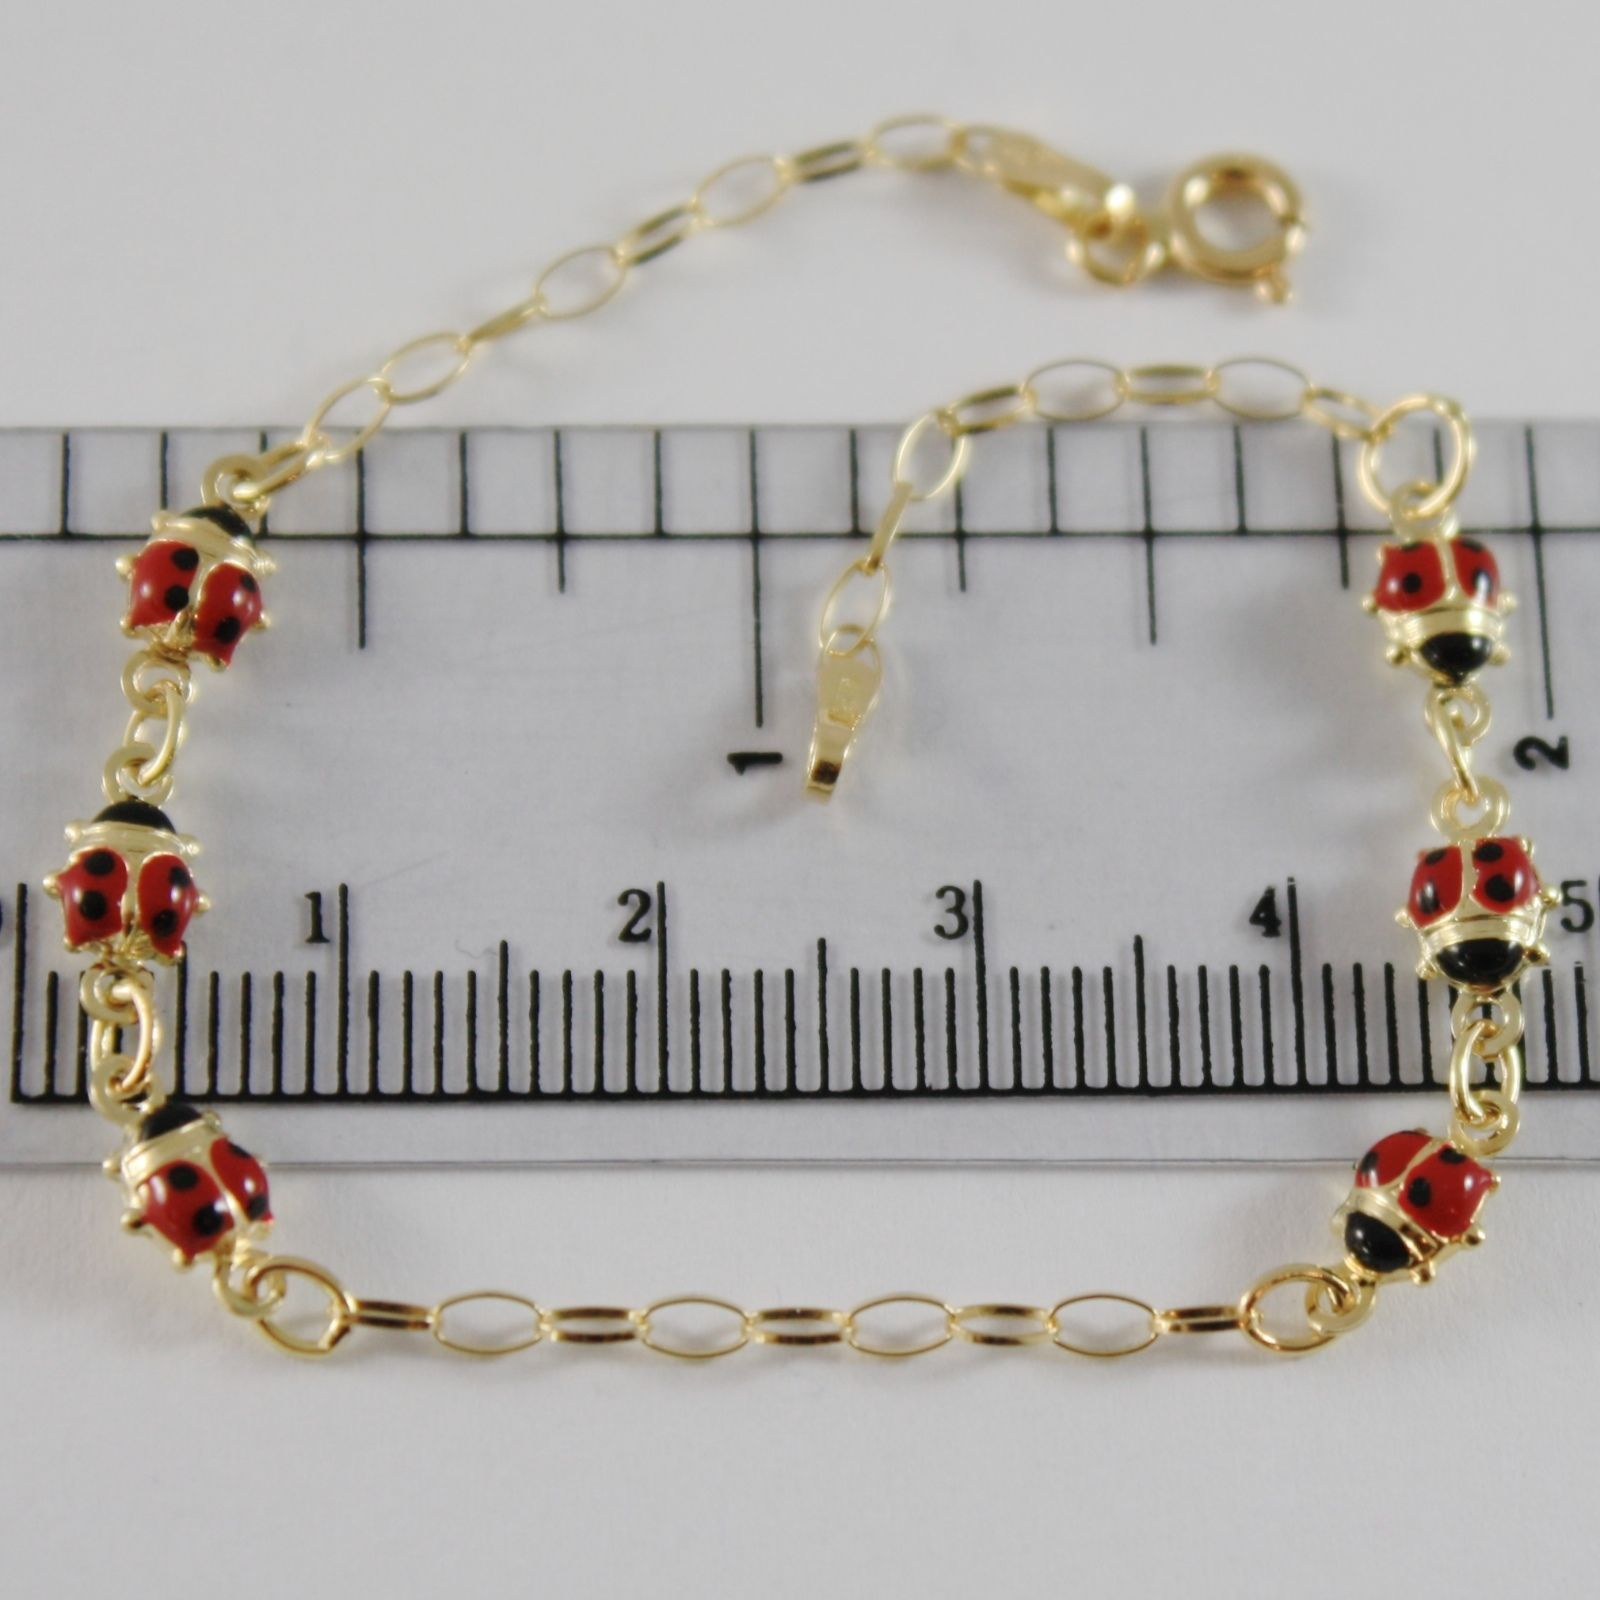 18K YELLOW GOLD GIRL BRACELET 6.70 GLAZED LADYBIRD LADYBUG ENAMEL, MADE IN ITALY